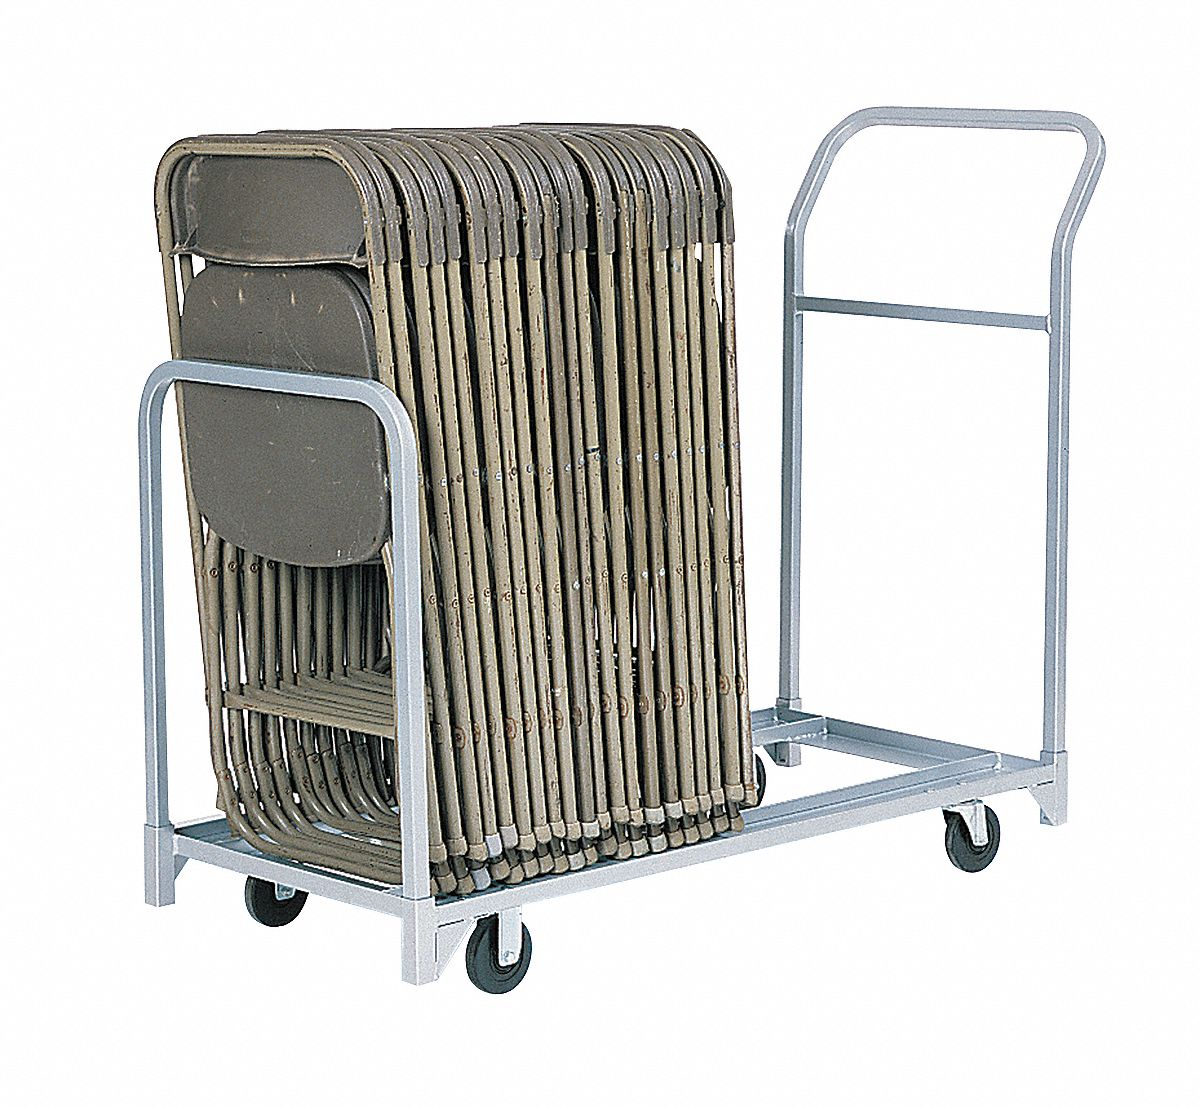 Cart for Folding & Stacking Chairs,  300 lb Load Capacity,  For Max. Number of Chairs 24